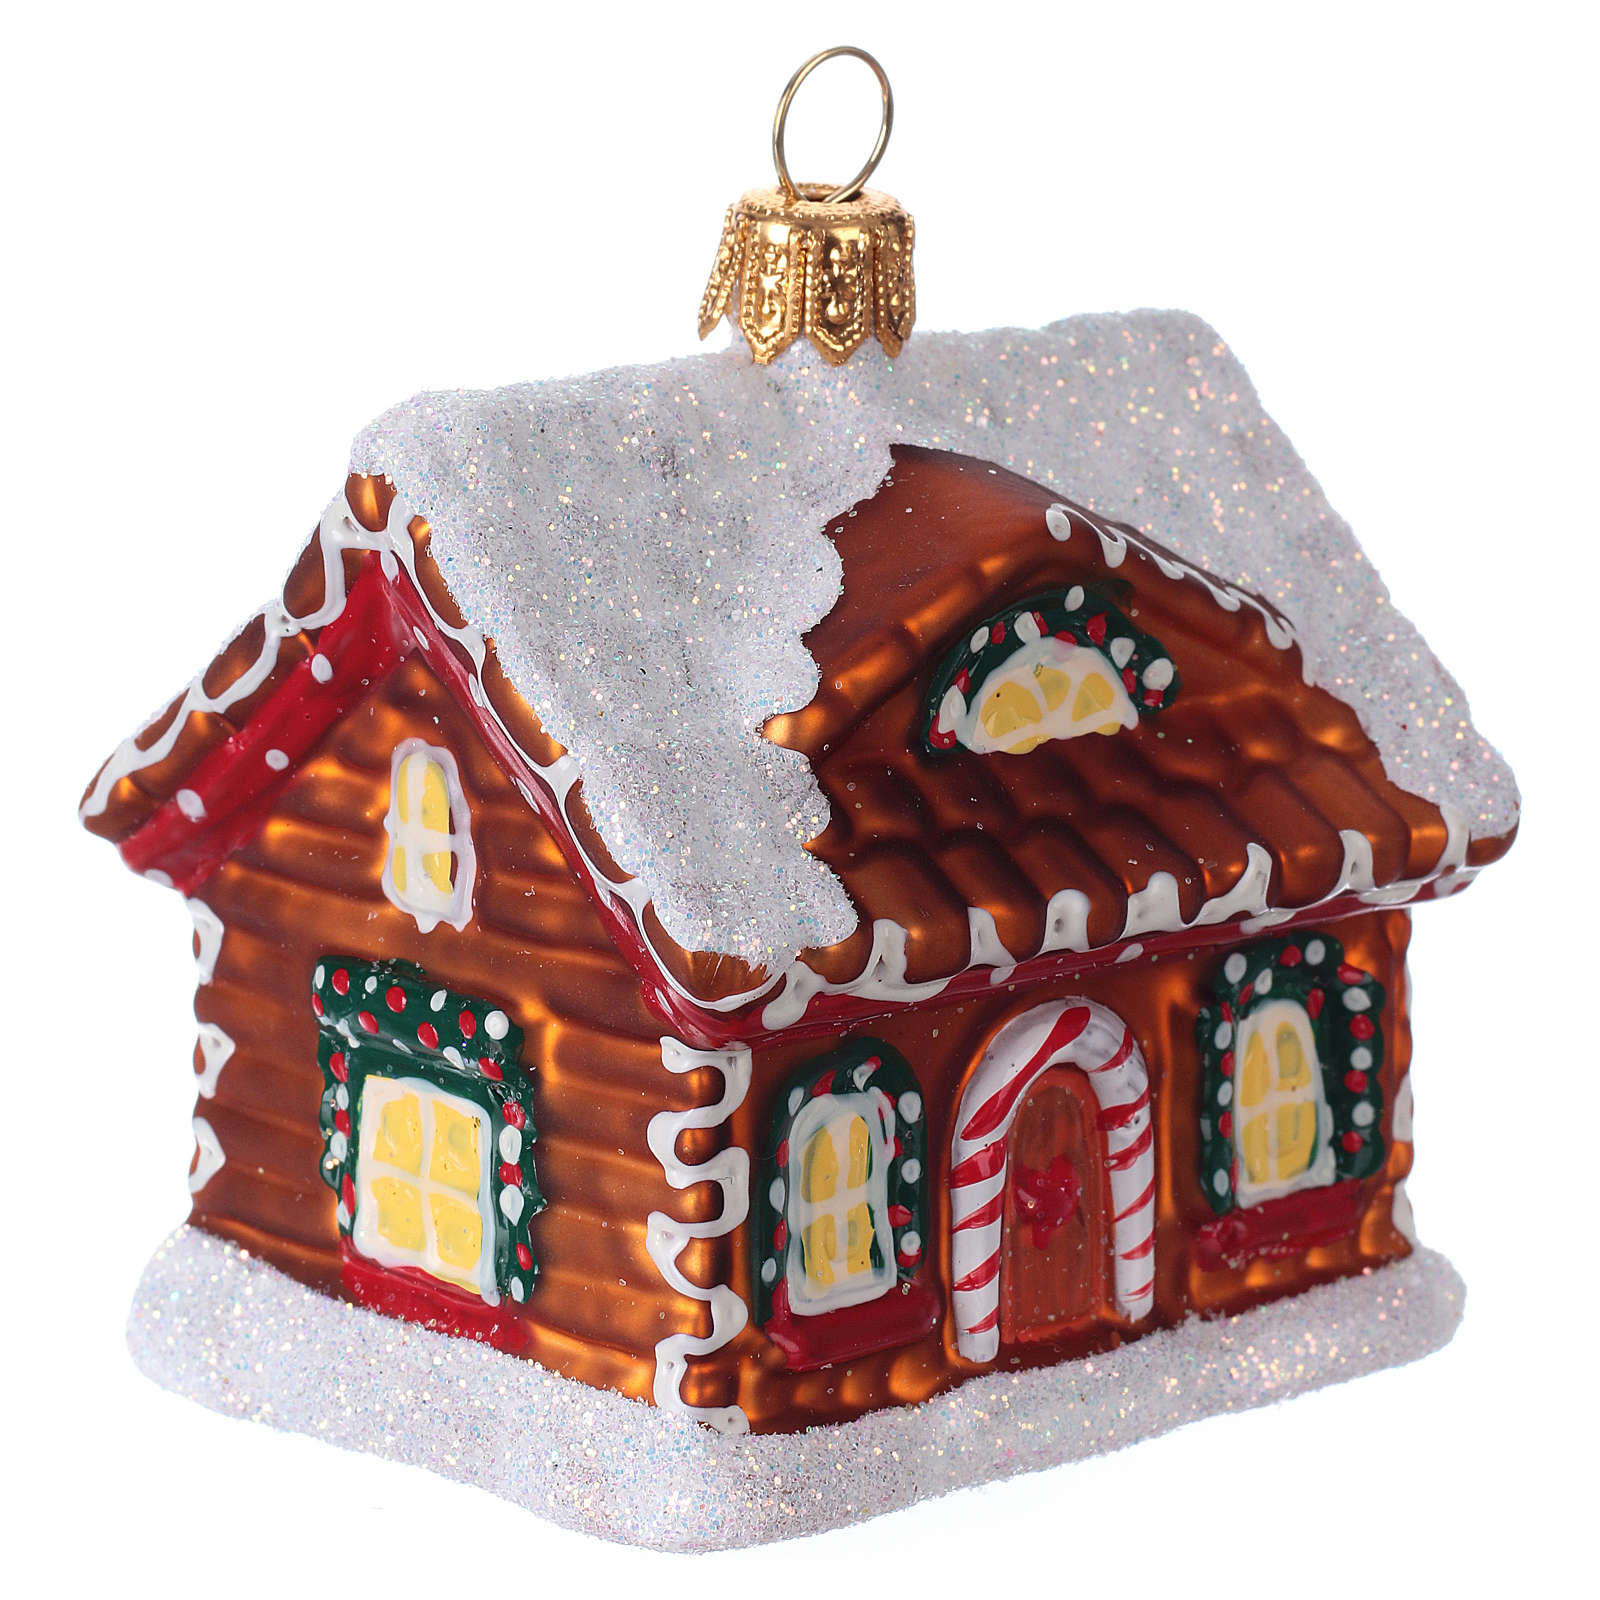 Gingerbread lodge in blown glass for Christmas Tree 4